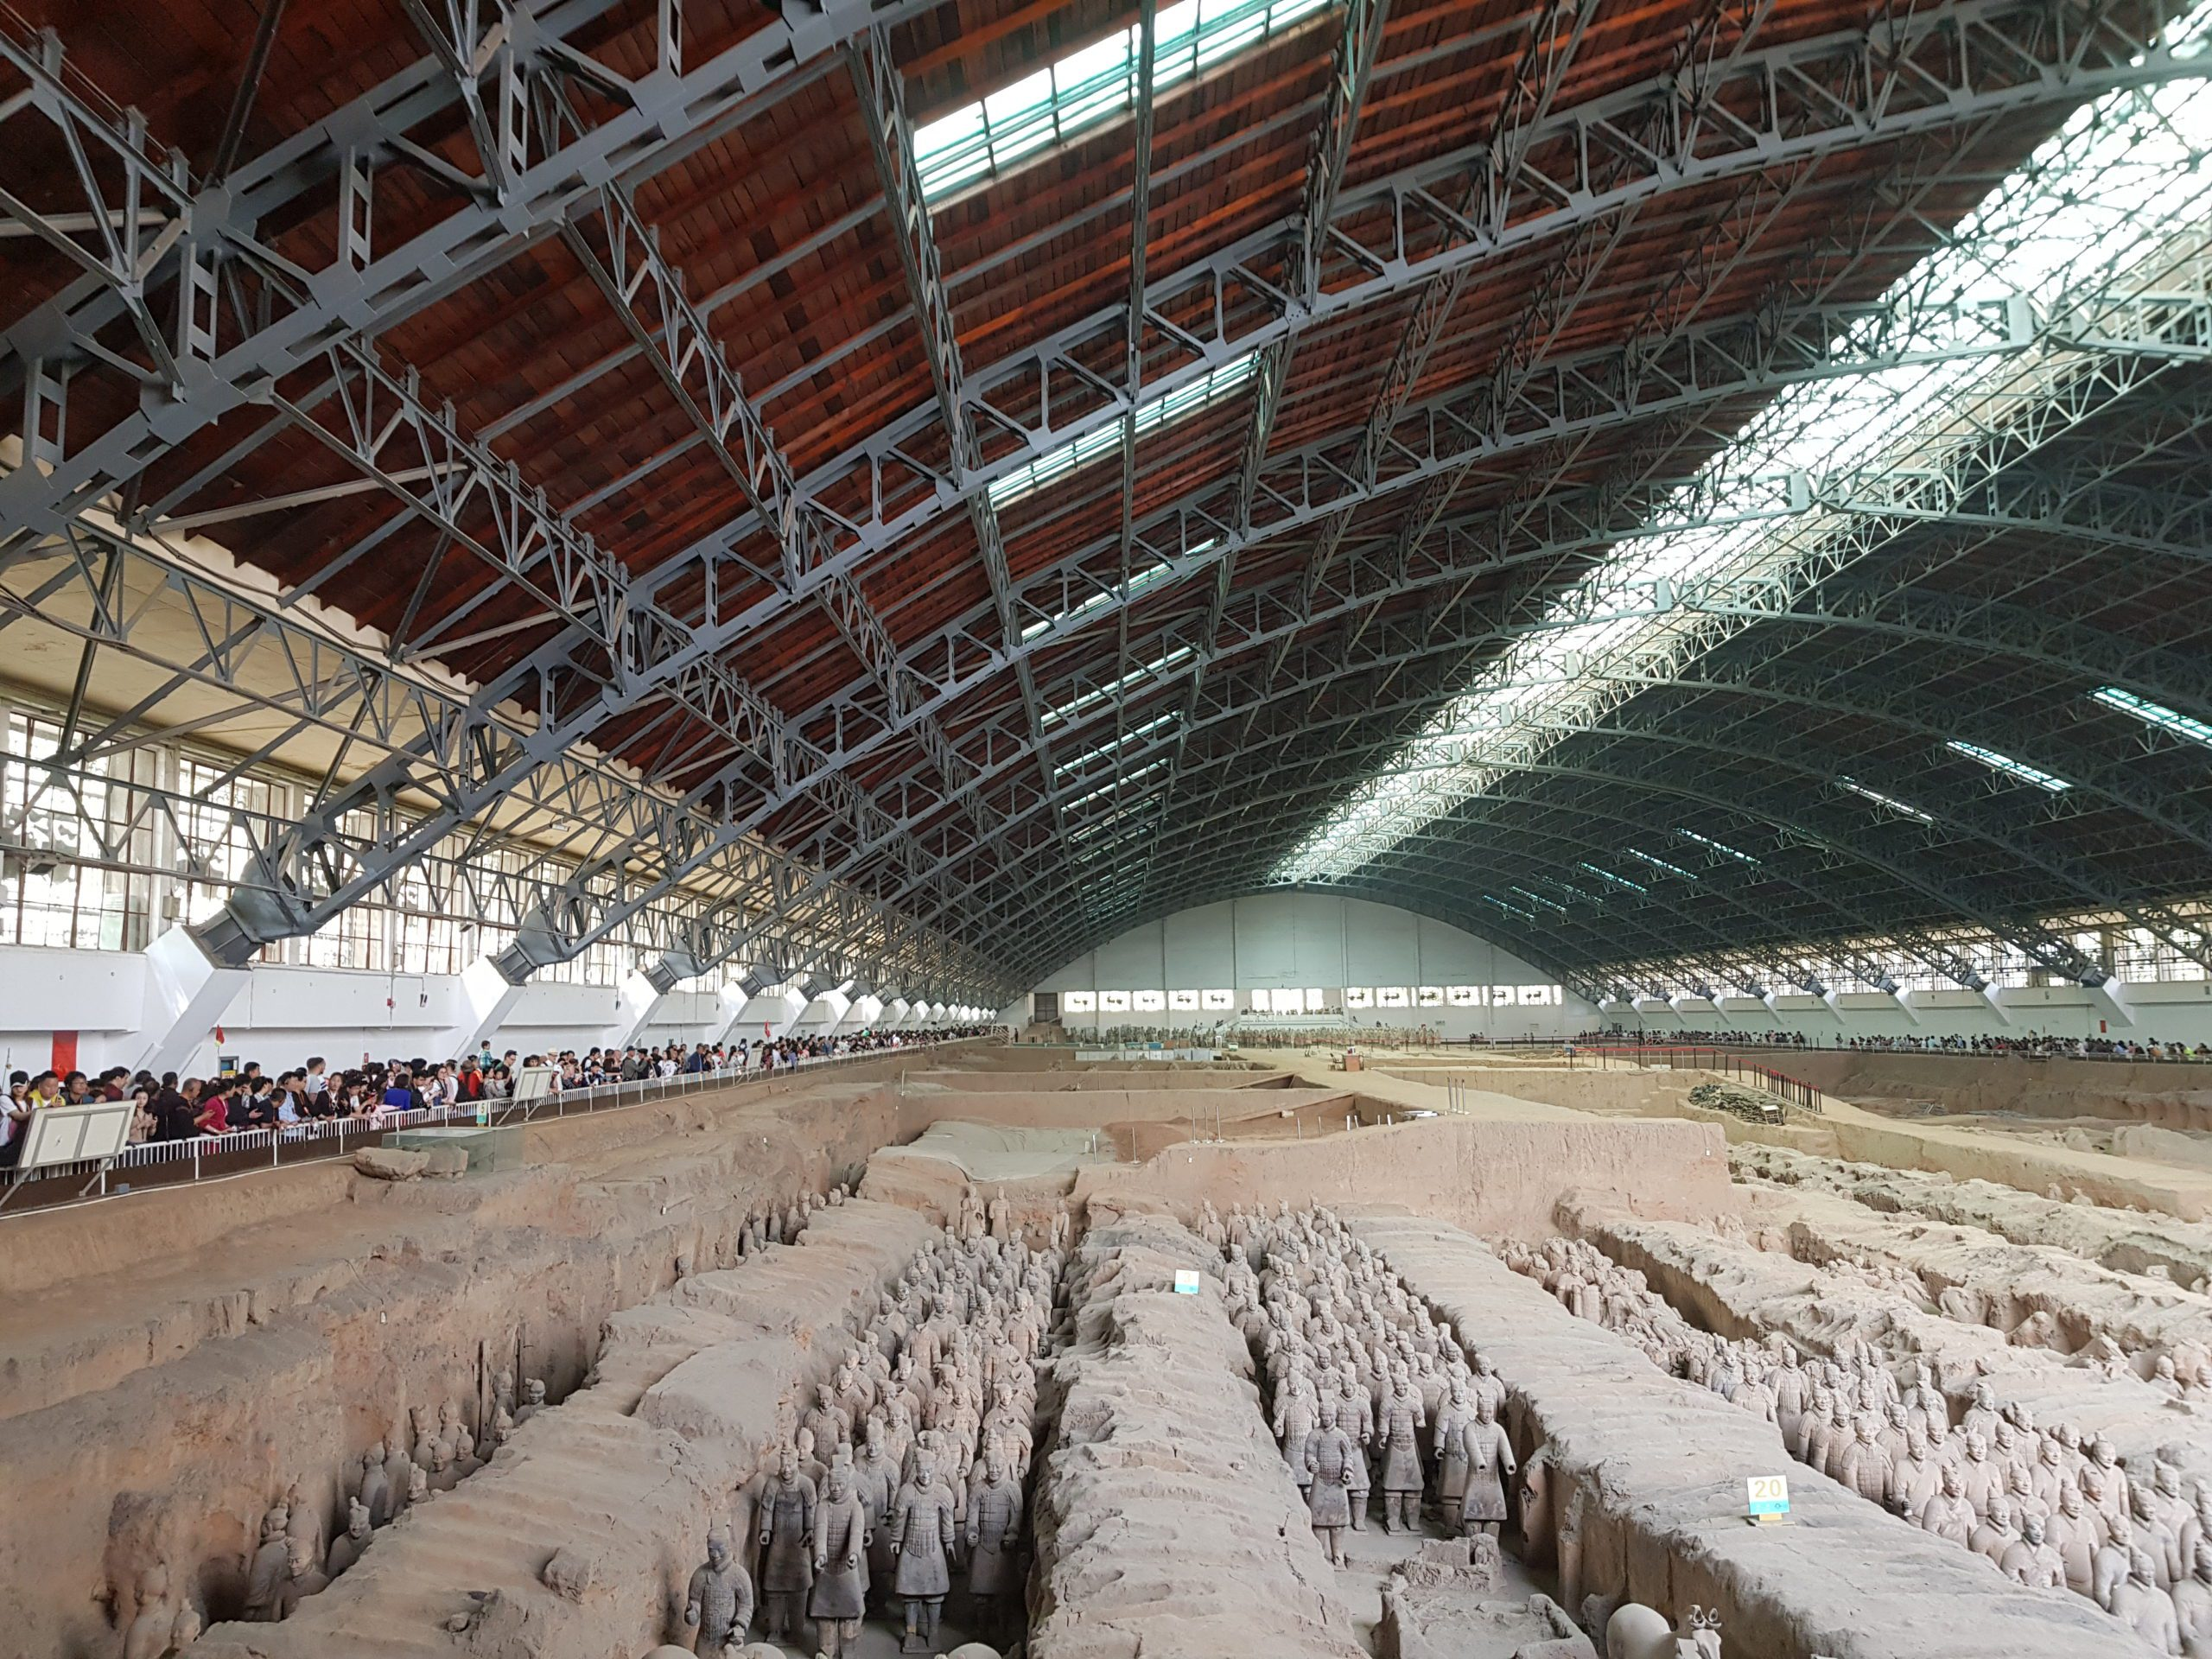 Terracotta army, one of the eight wonders of the world